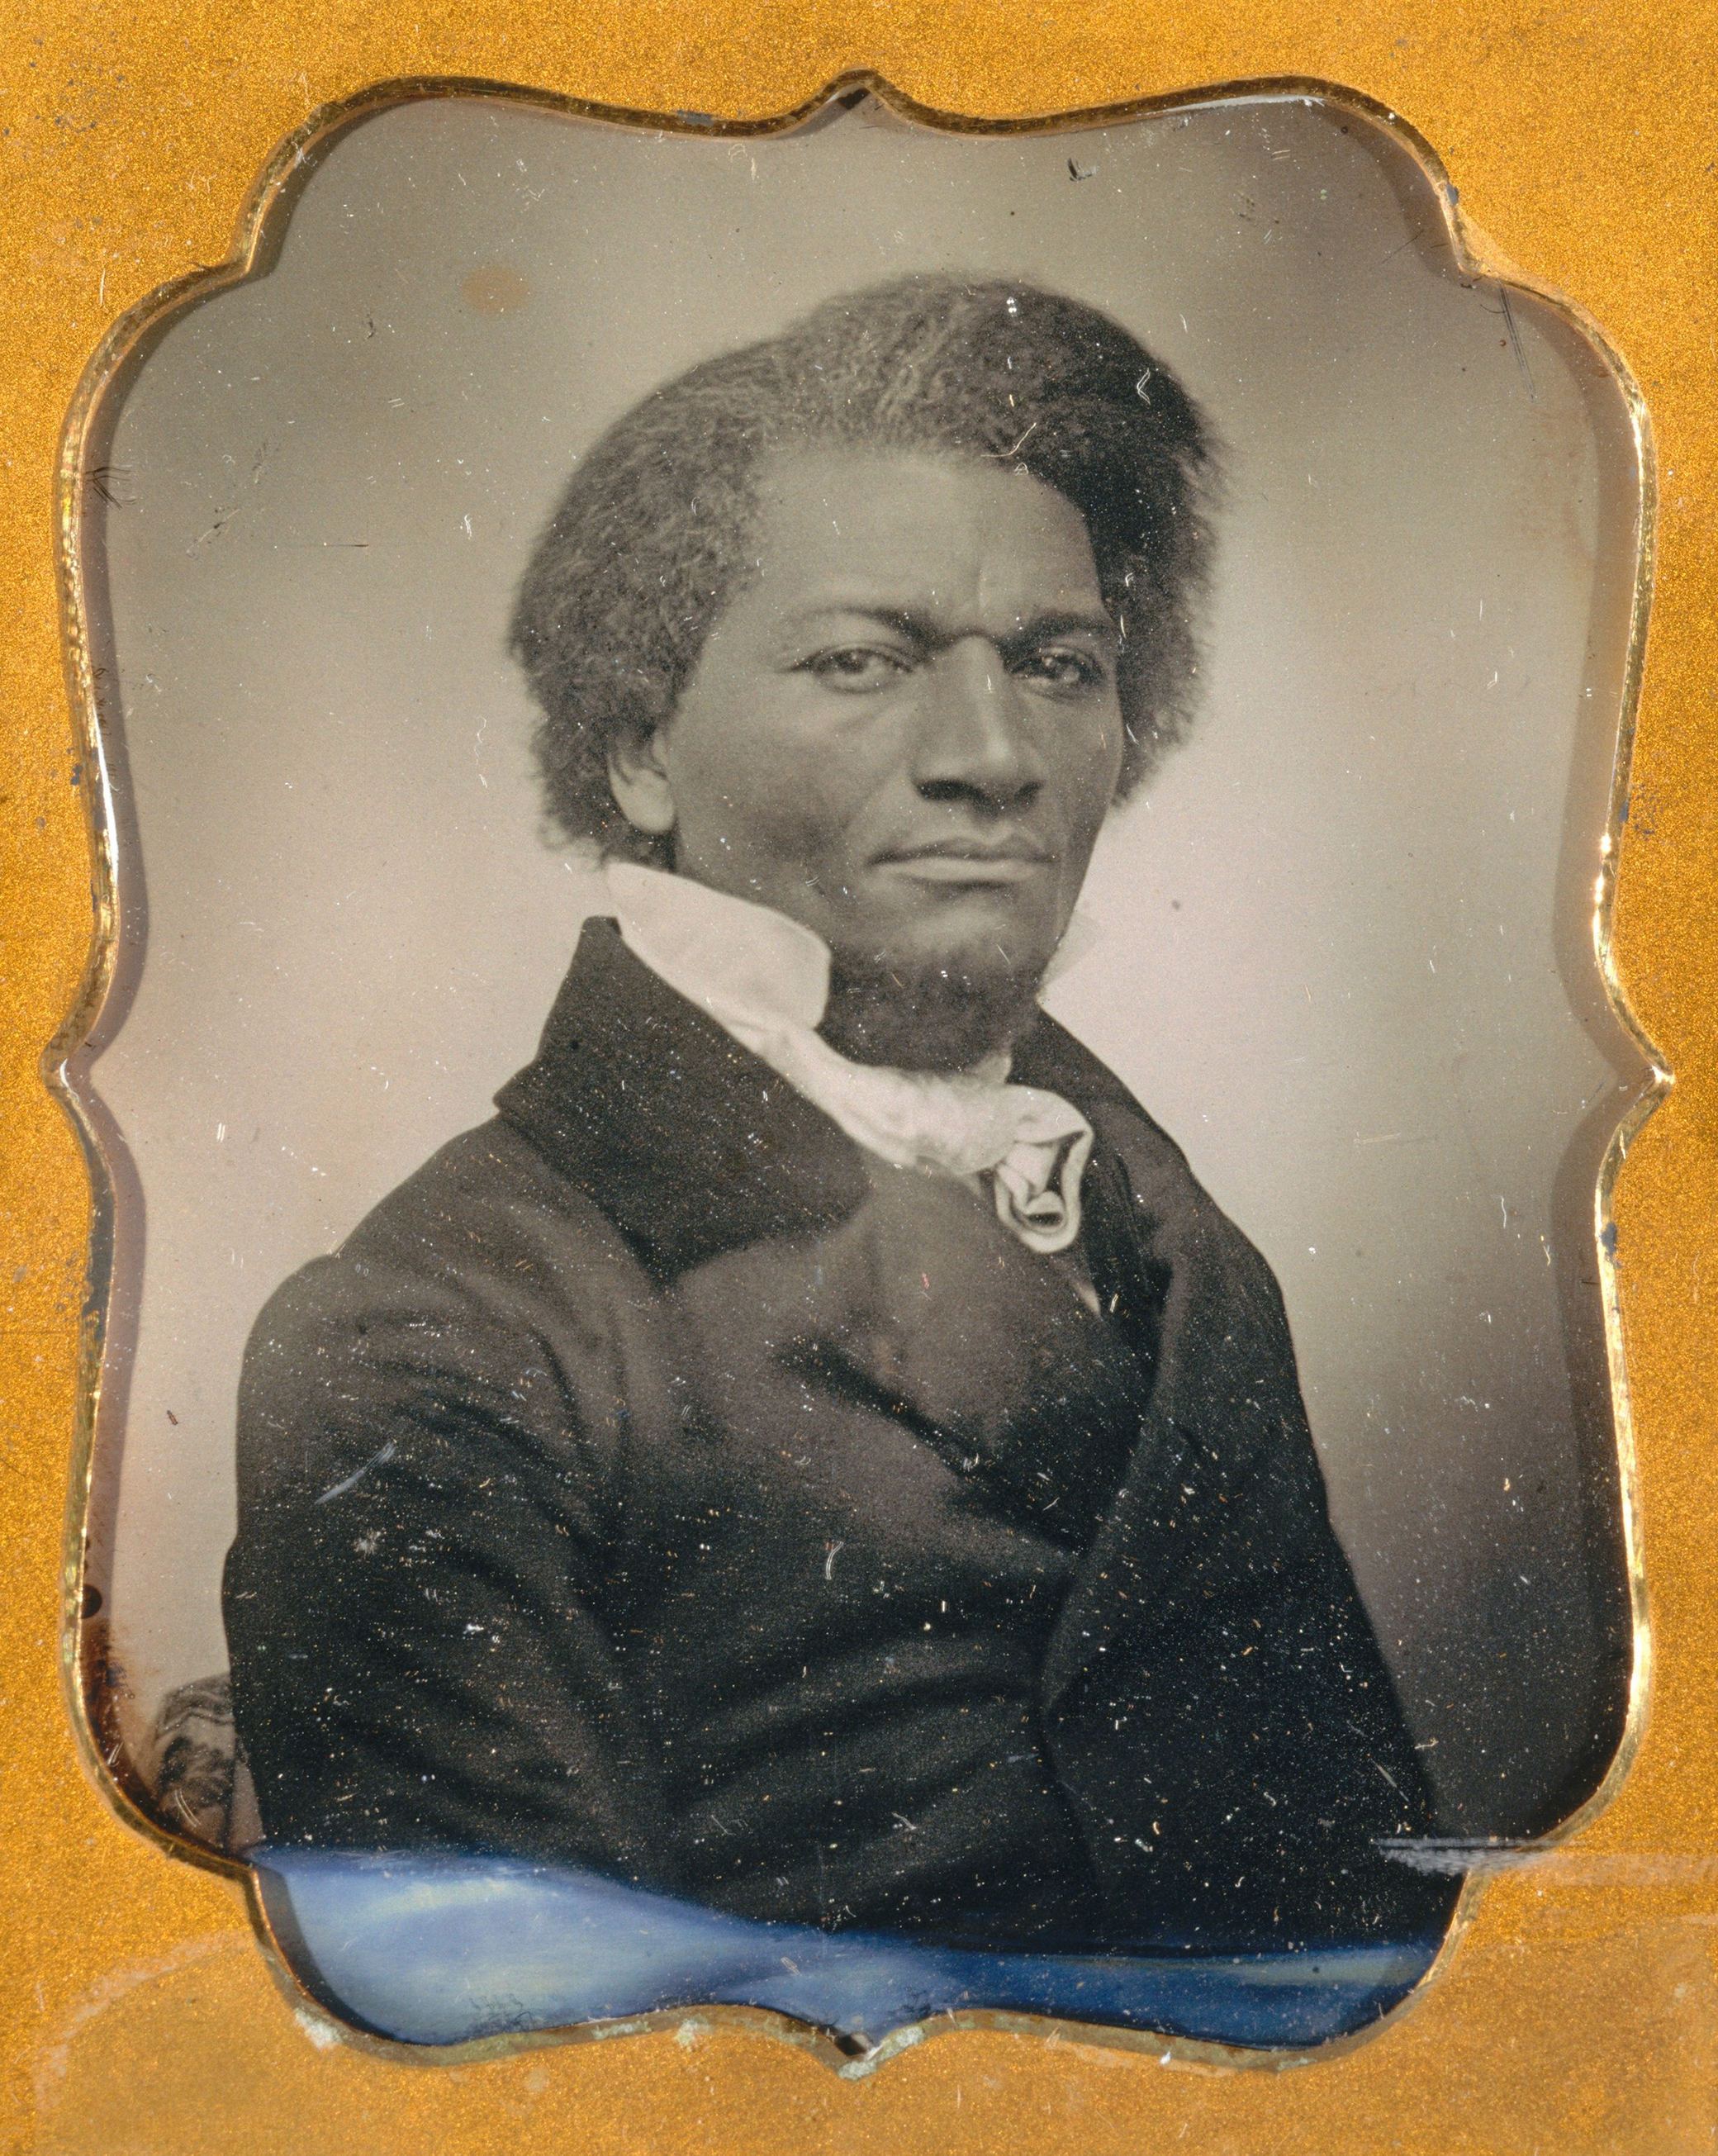 Frederick Douglass, c. 1855. The Metropolitan Museum of Art, The Rubel Collection, Gift of William Rubel, 2001.